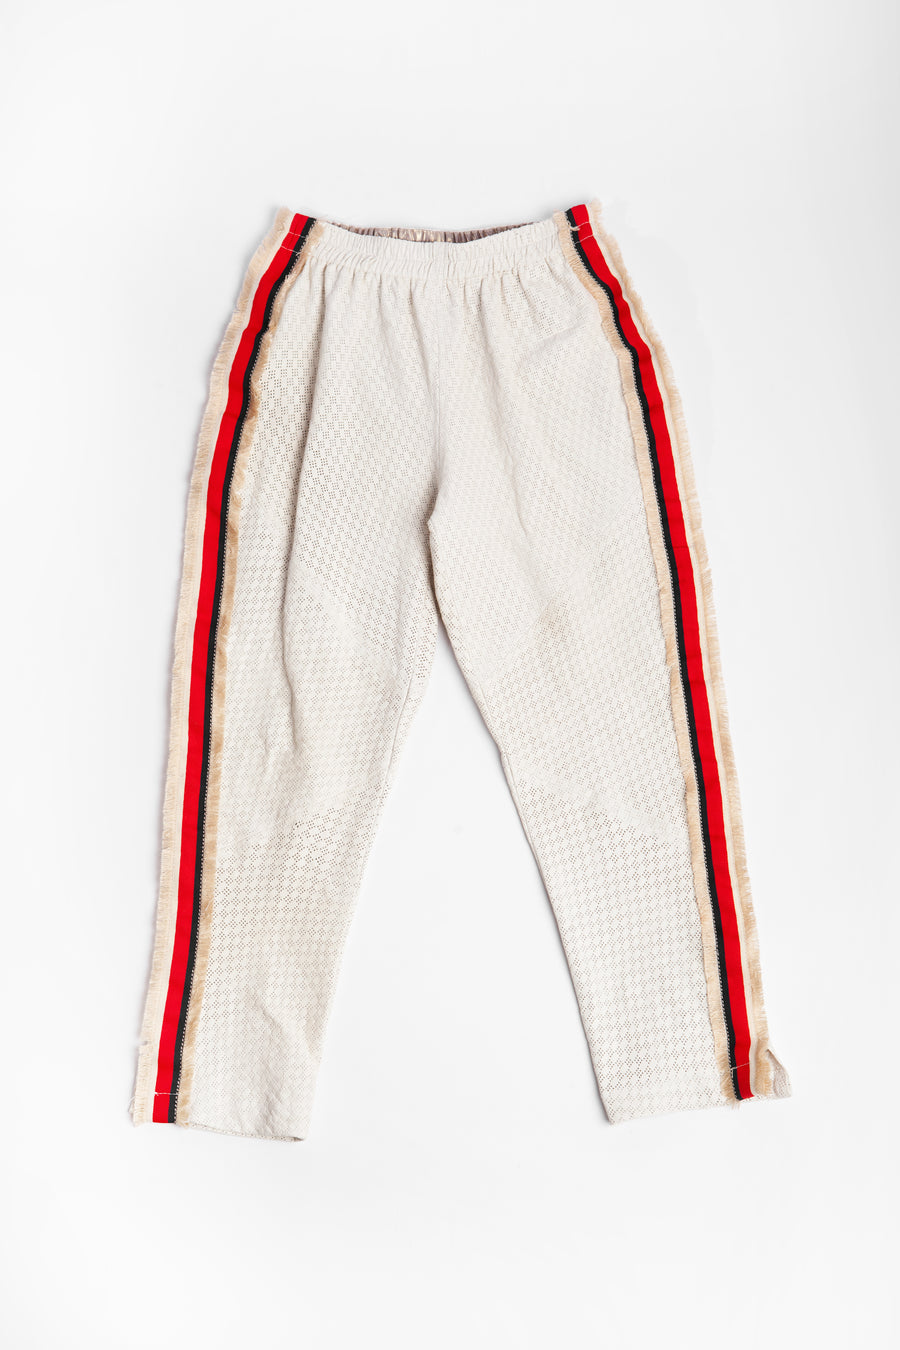 White leather pants with red and blue stripe